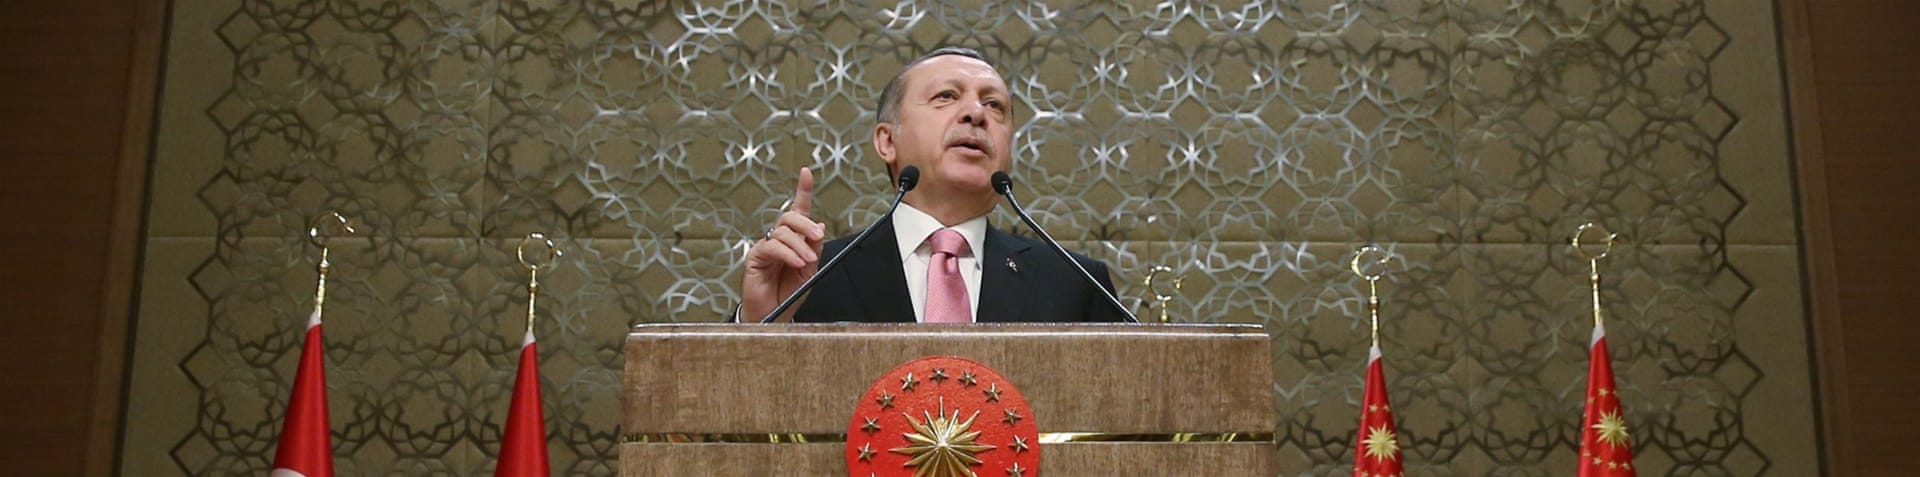 According to analysts, Mike Pompeo's unexpected visit to Ankara may indicate the start of a new security-based partnership between Turkey and the US [Jonathan Ernst/Reuters]